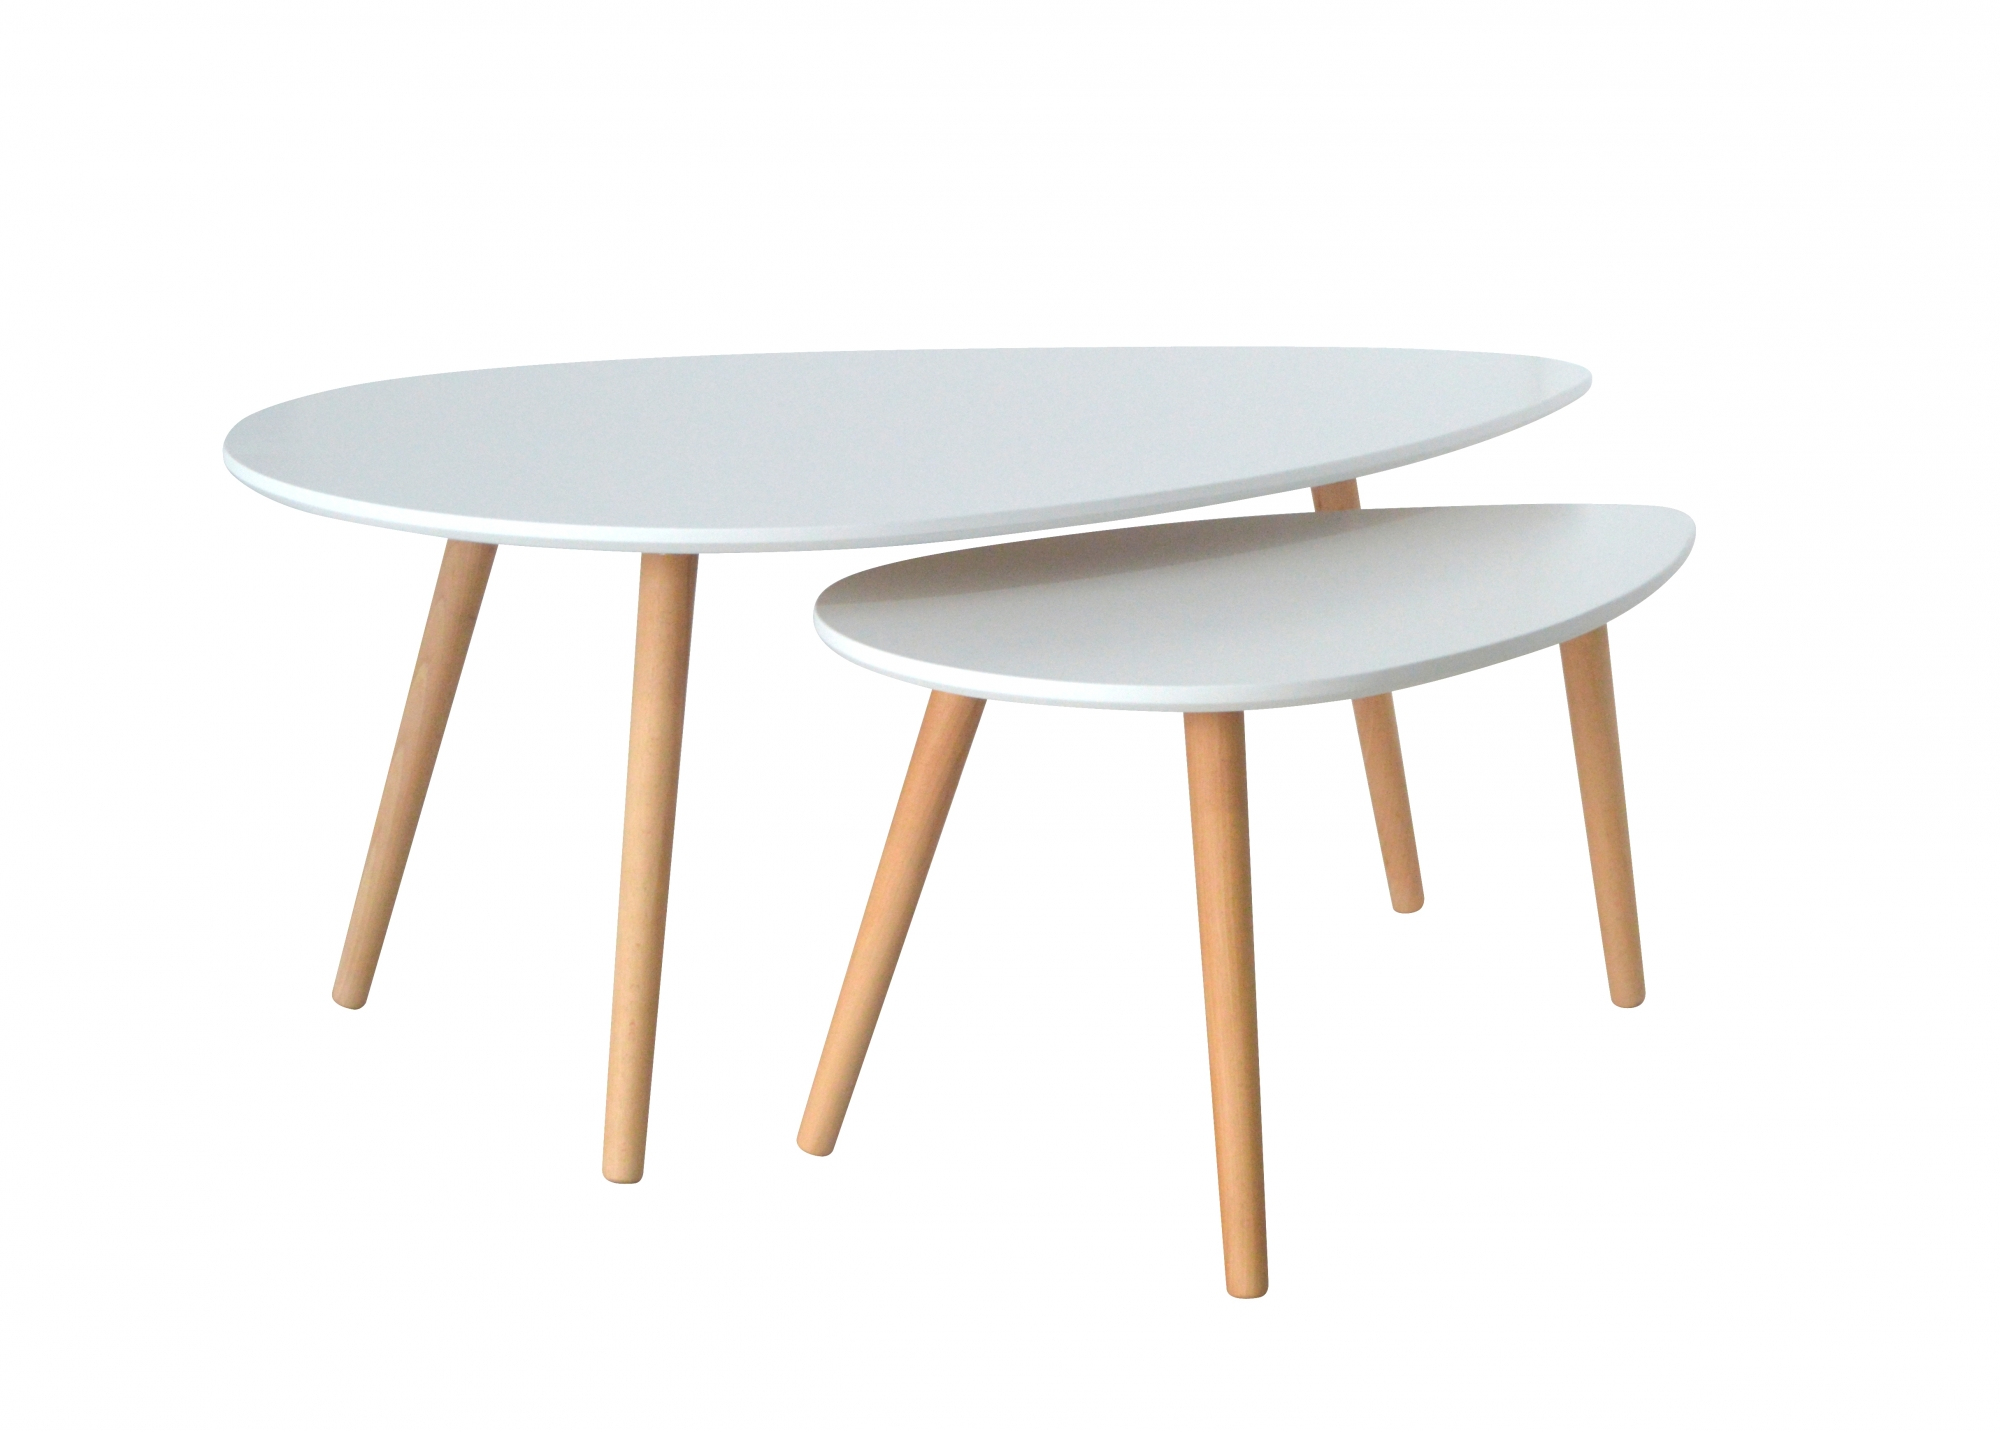 Table basse scandinave blanche - spring